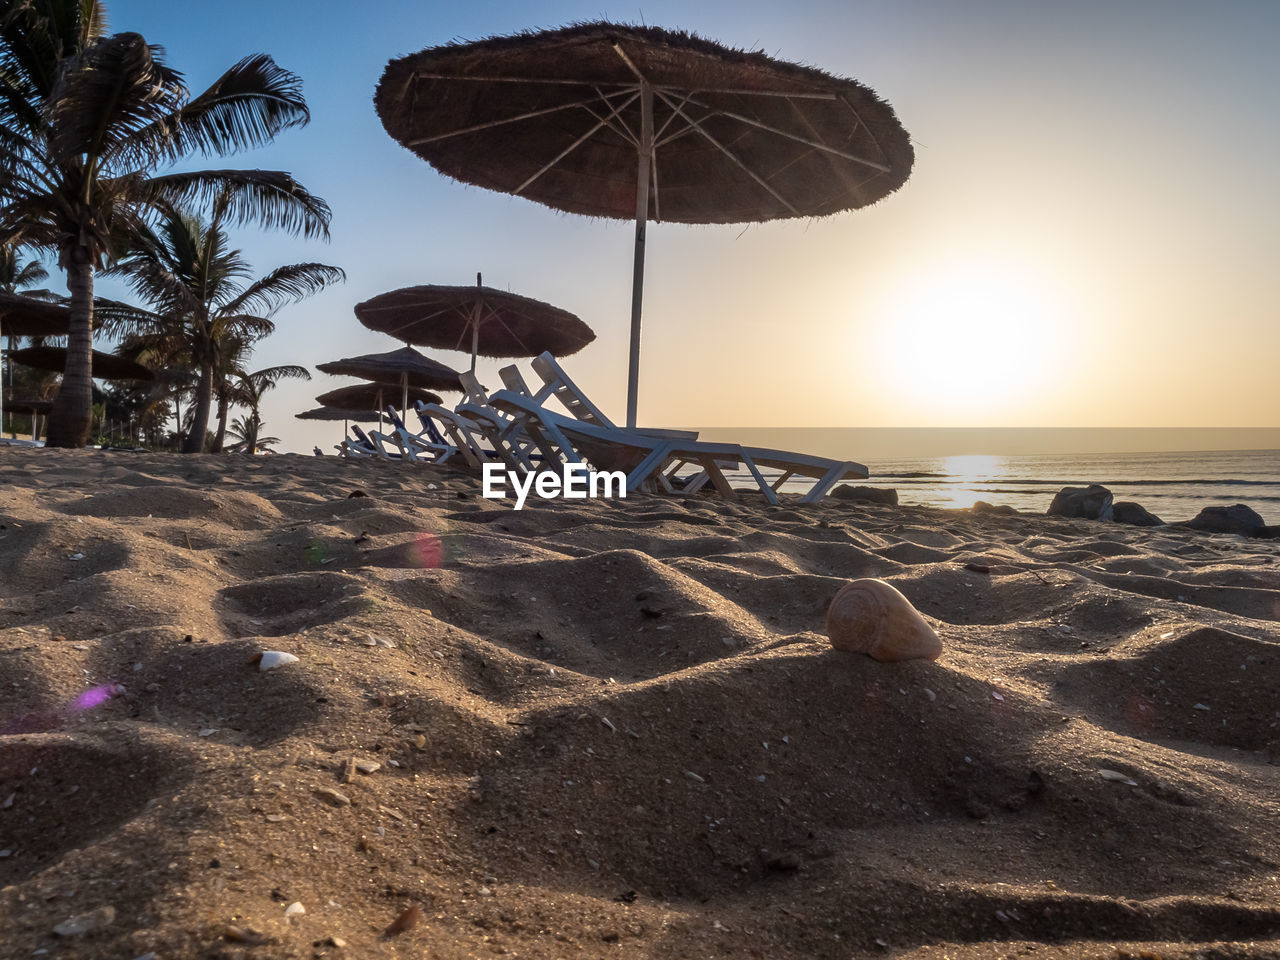 beach, sky, land, water, sea, nature, sunset, sand, tropical climate, palm tree, parasol, umbrella, beauty in nature, horizon over water, sunlight, sun, tree, scenics - nature, tranquility, outdoors, coconut palm tree